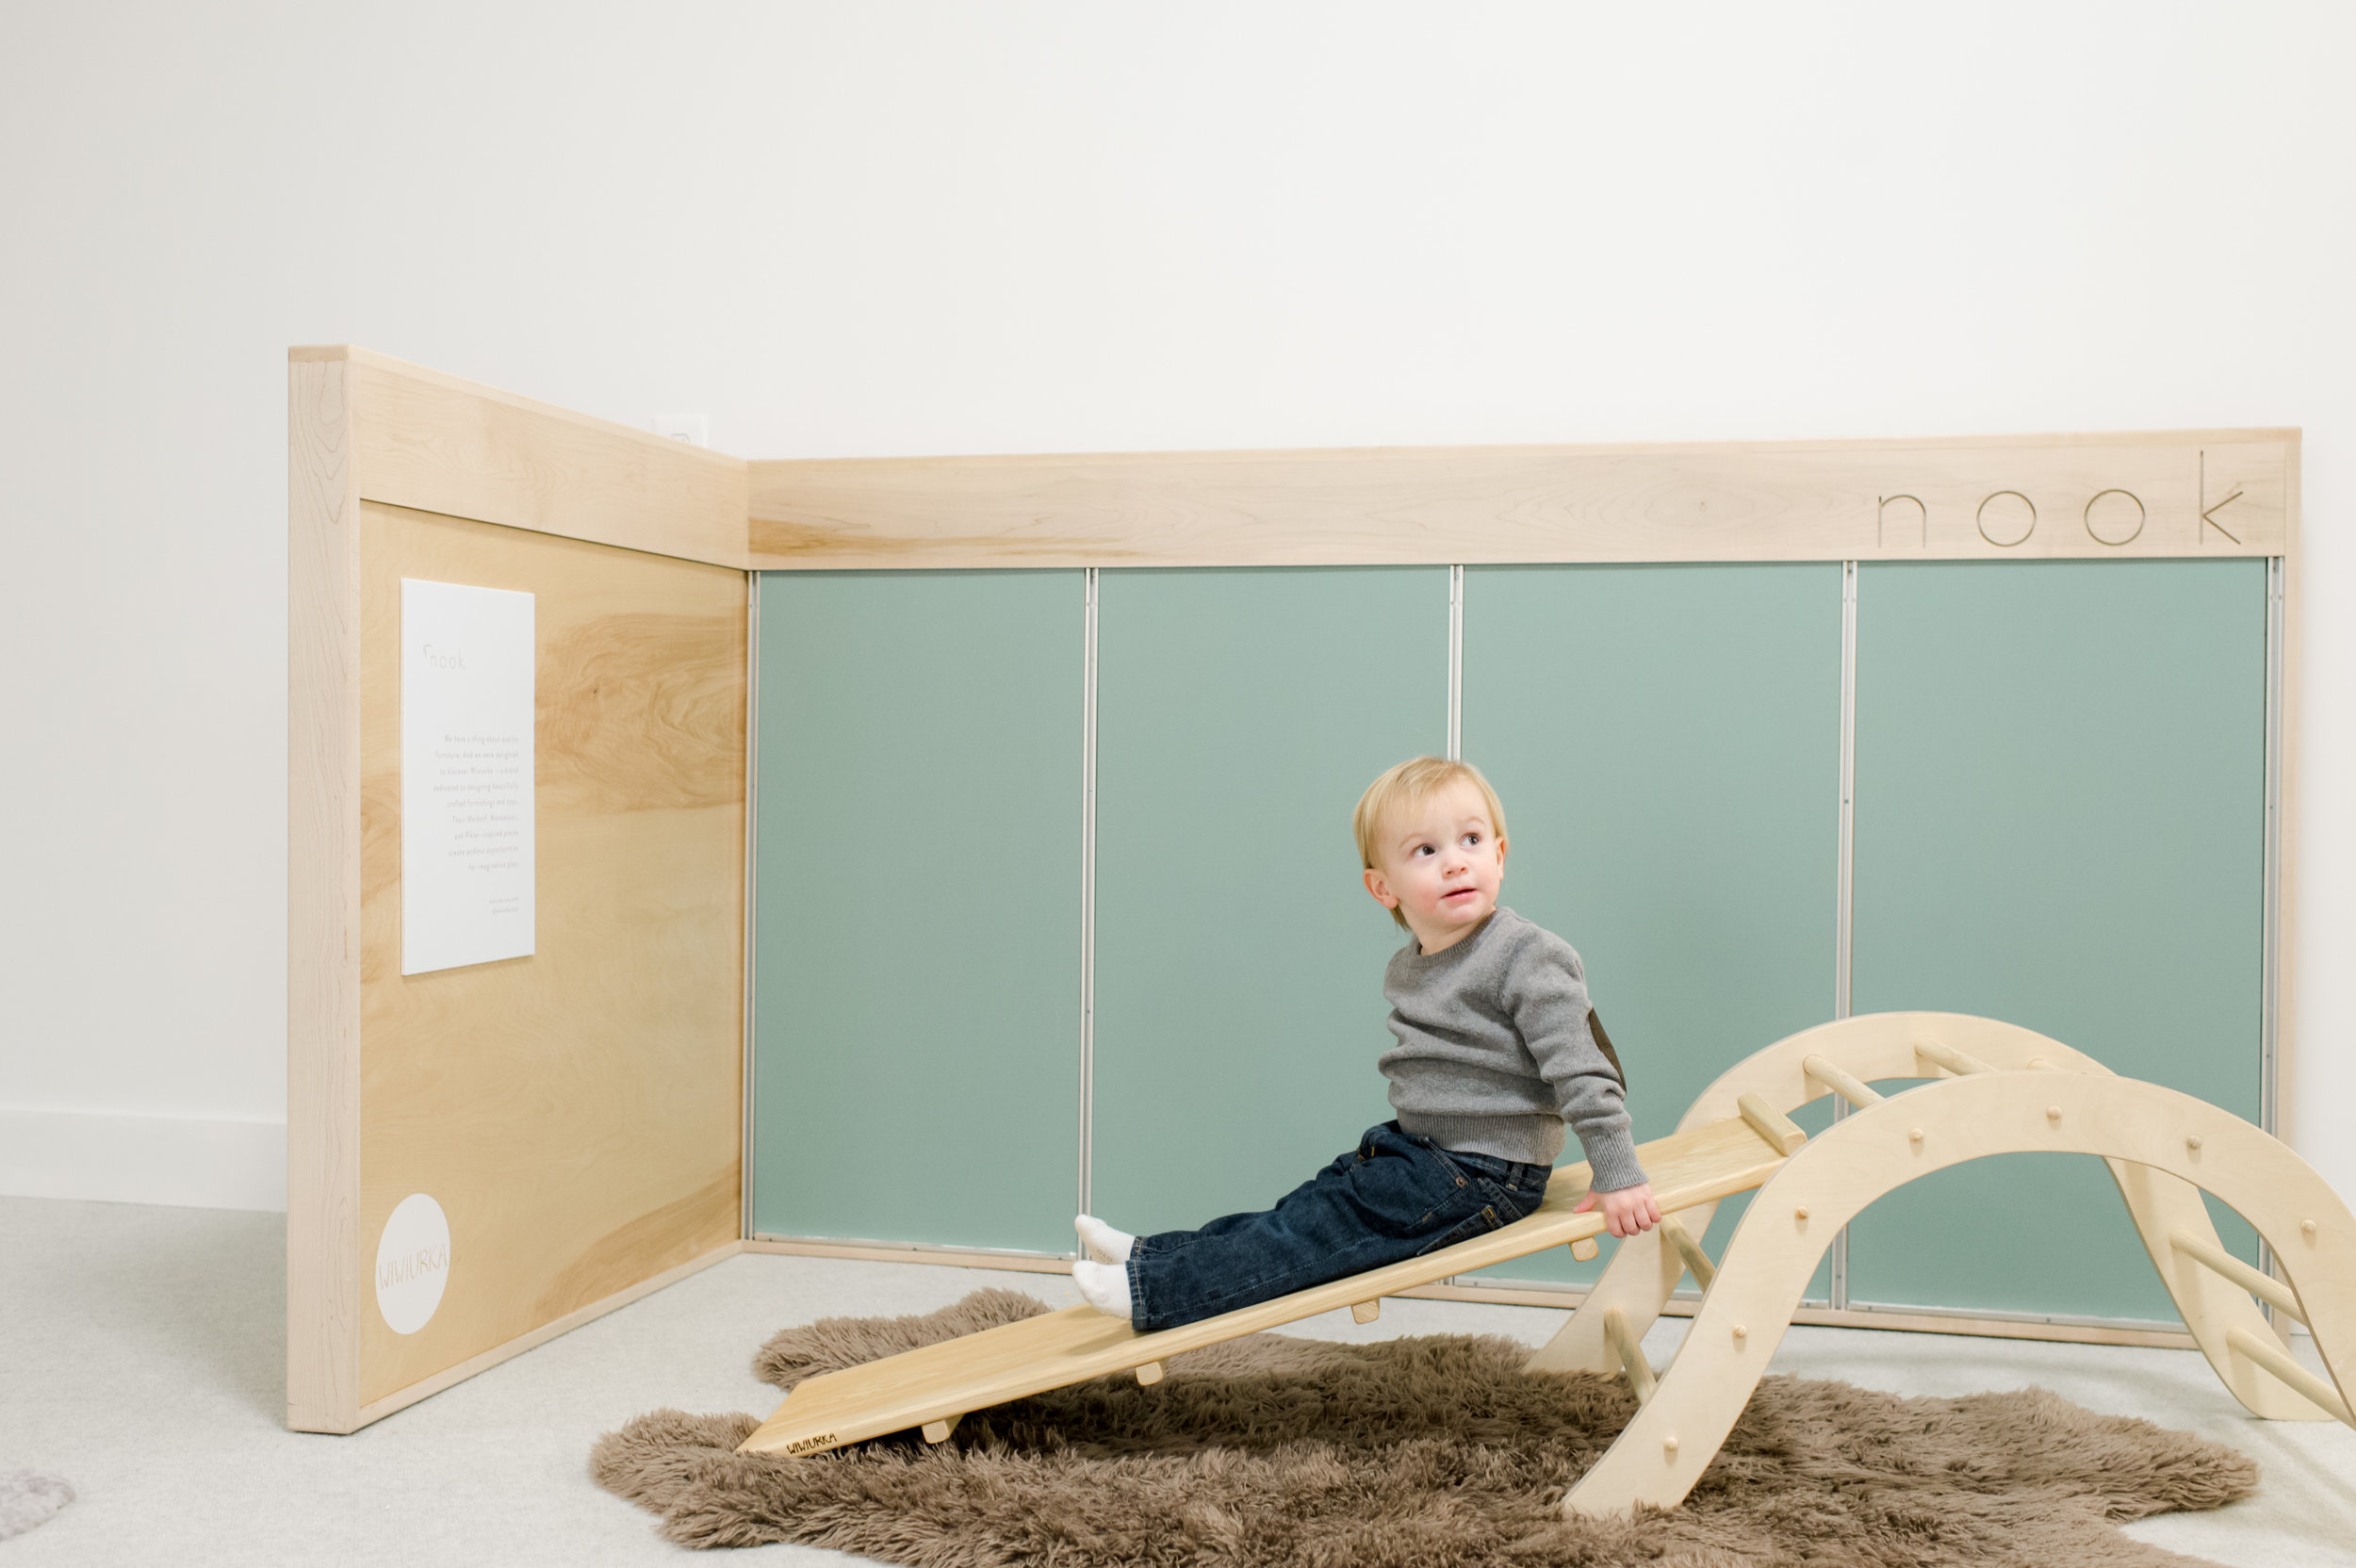 wiwiurka - hand-crafted wooden play and climbing structures for your home, inspired by Waldorf, Pikler, and Montessori.